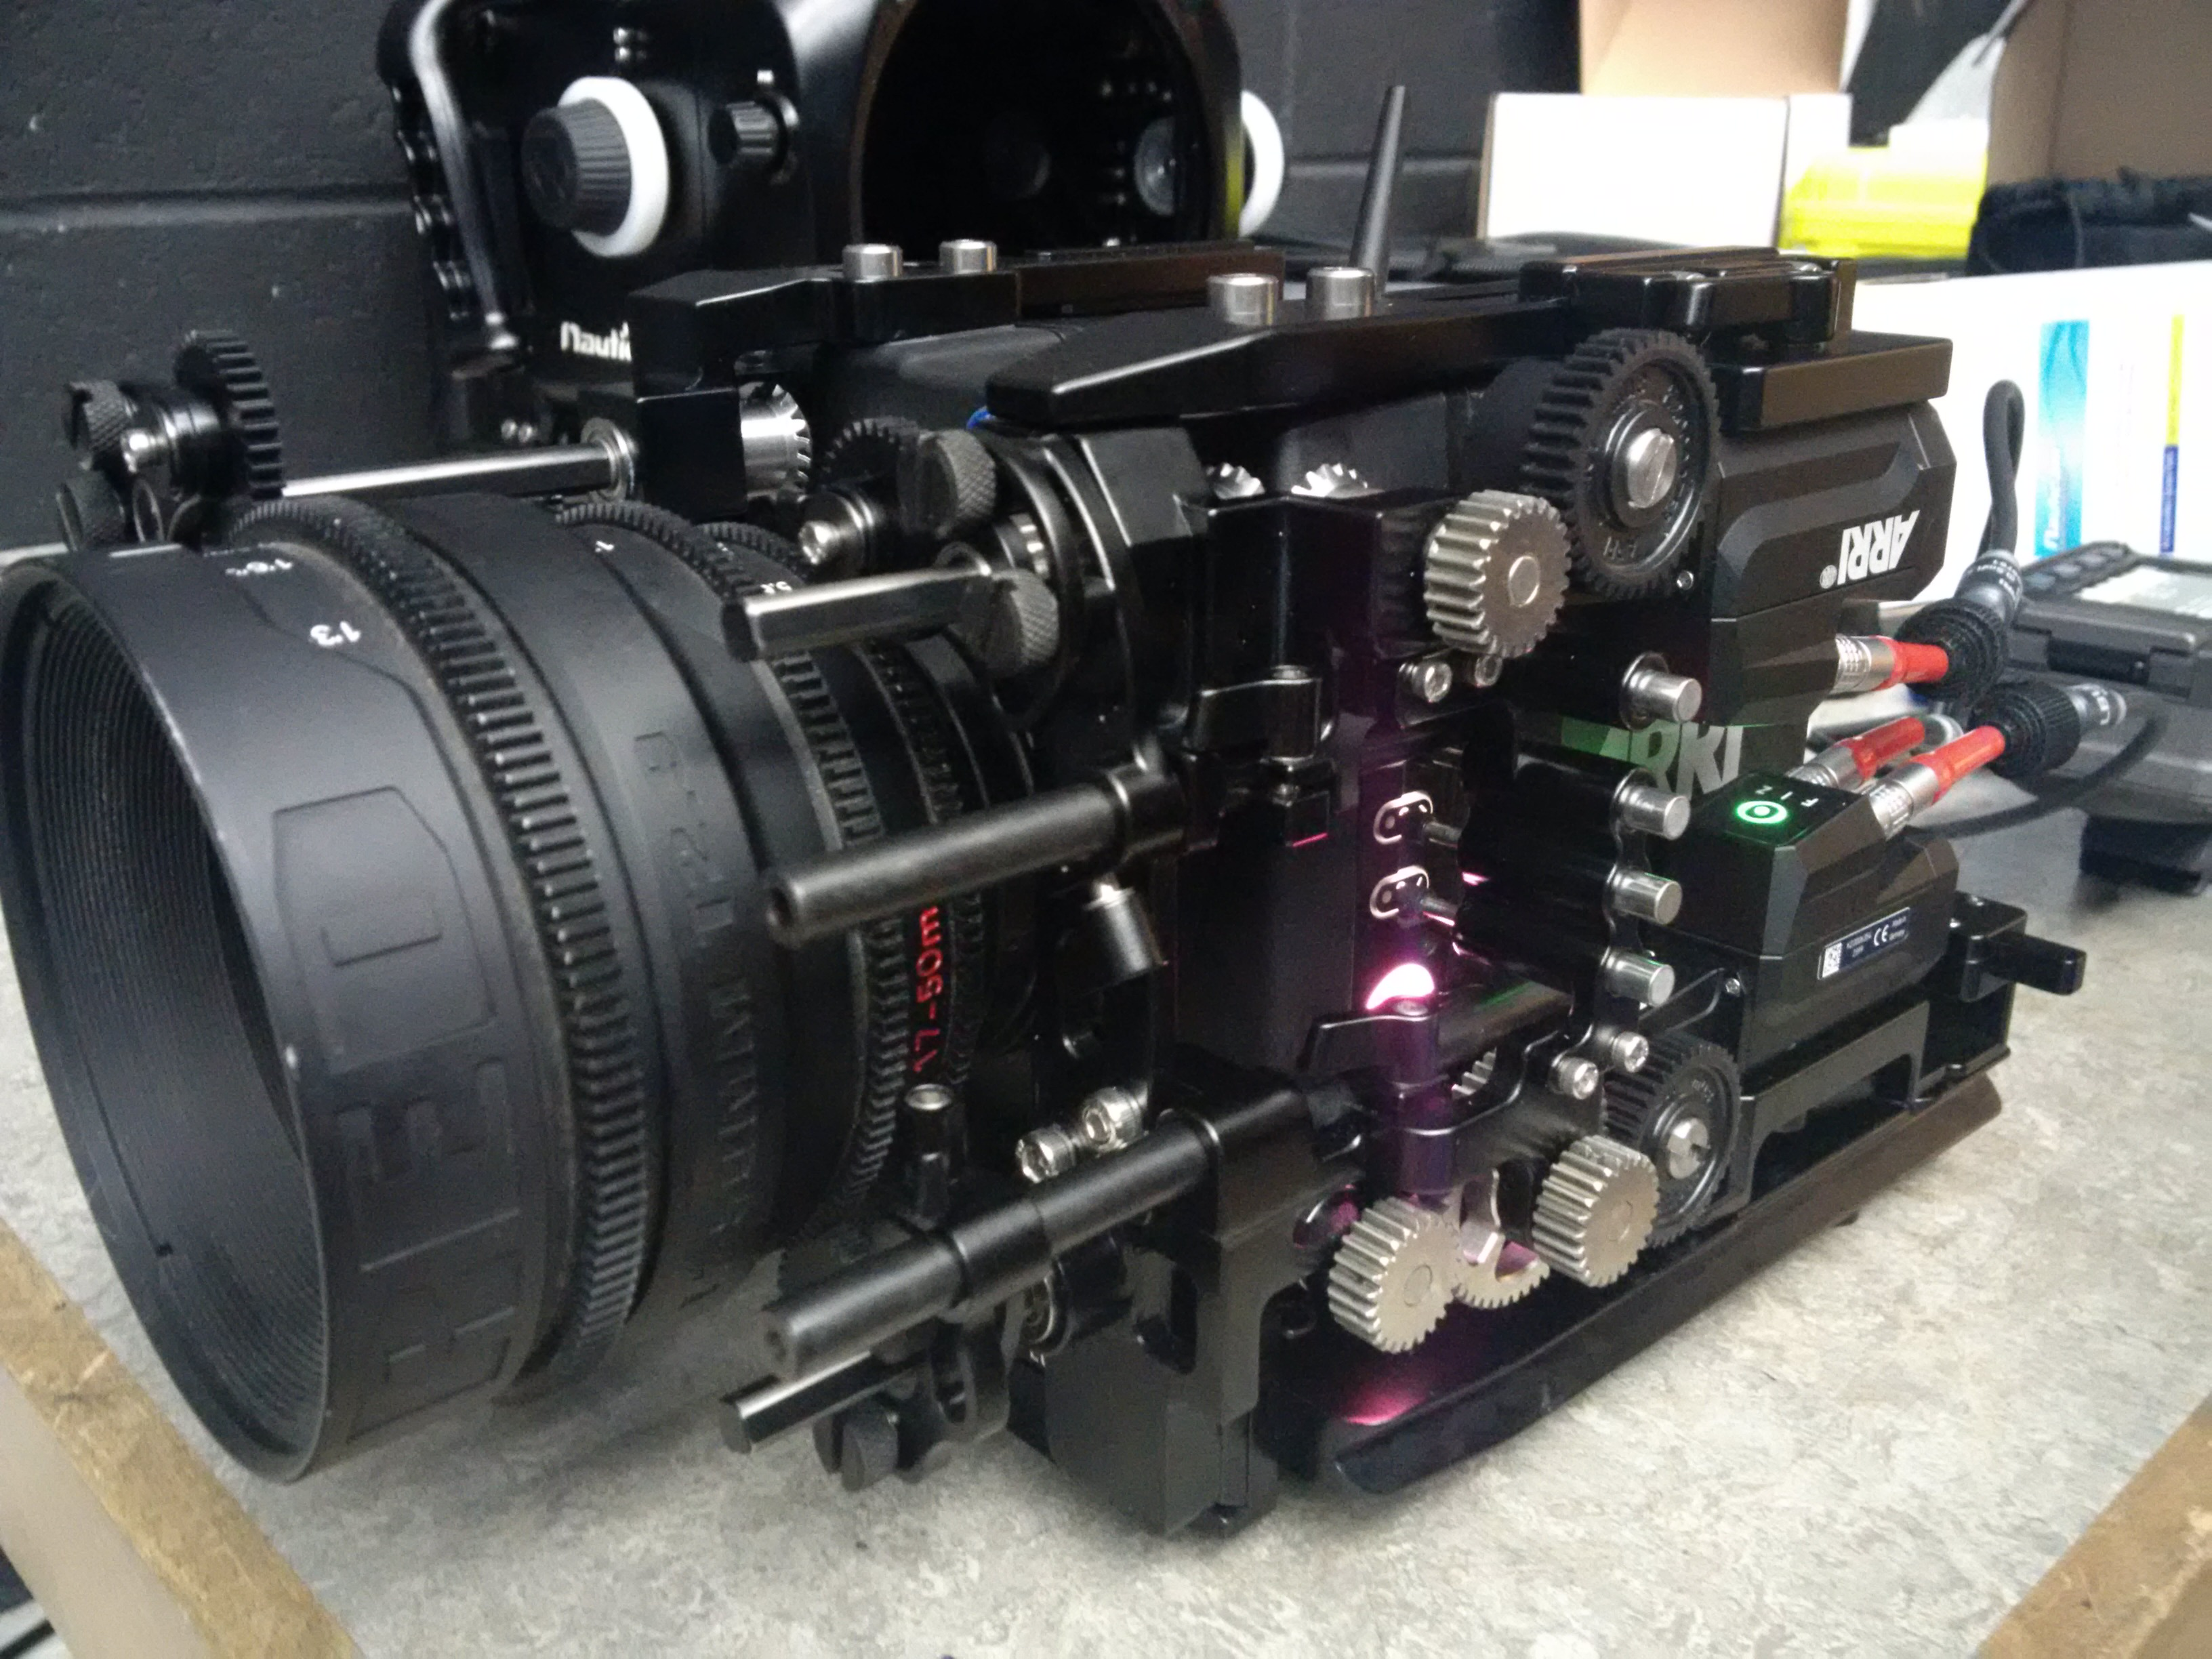 c-motion motors on arri mini